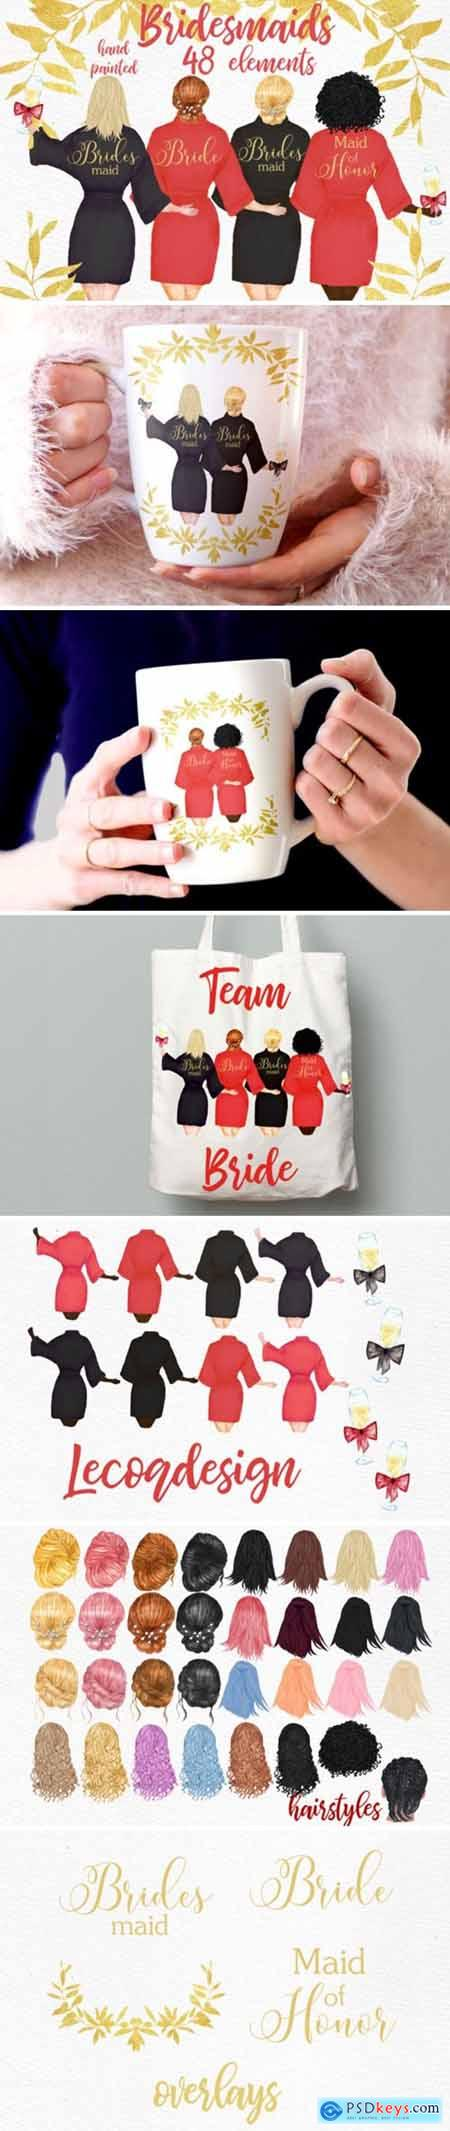 Bridesmaid Wedding Robes Clipart 1748843